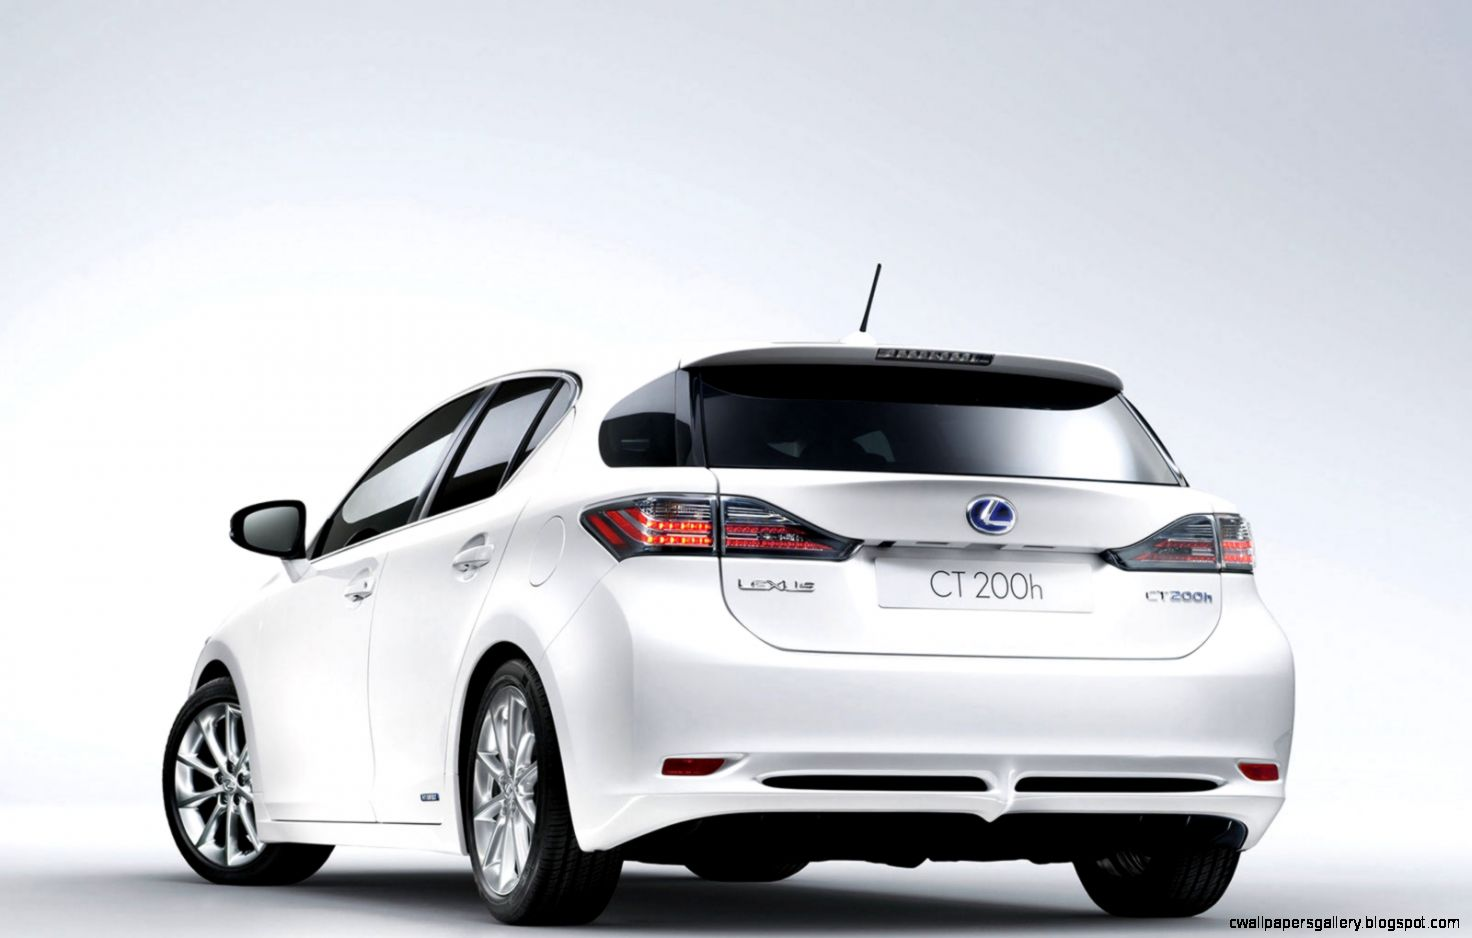 Lexus CT200h 18 VVT i Luxury   Luxurious family car   photo